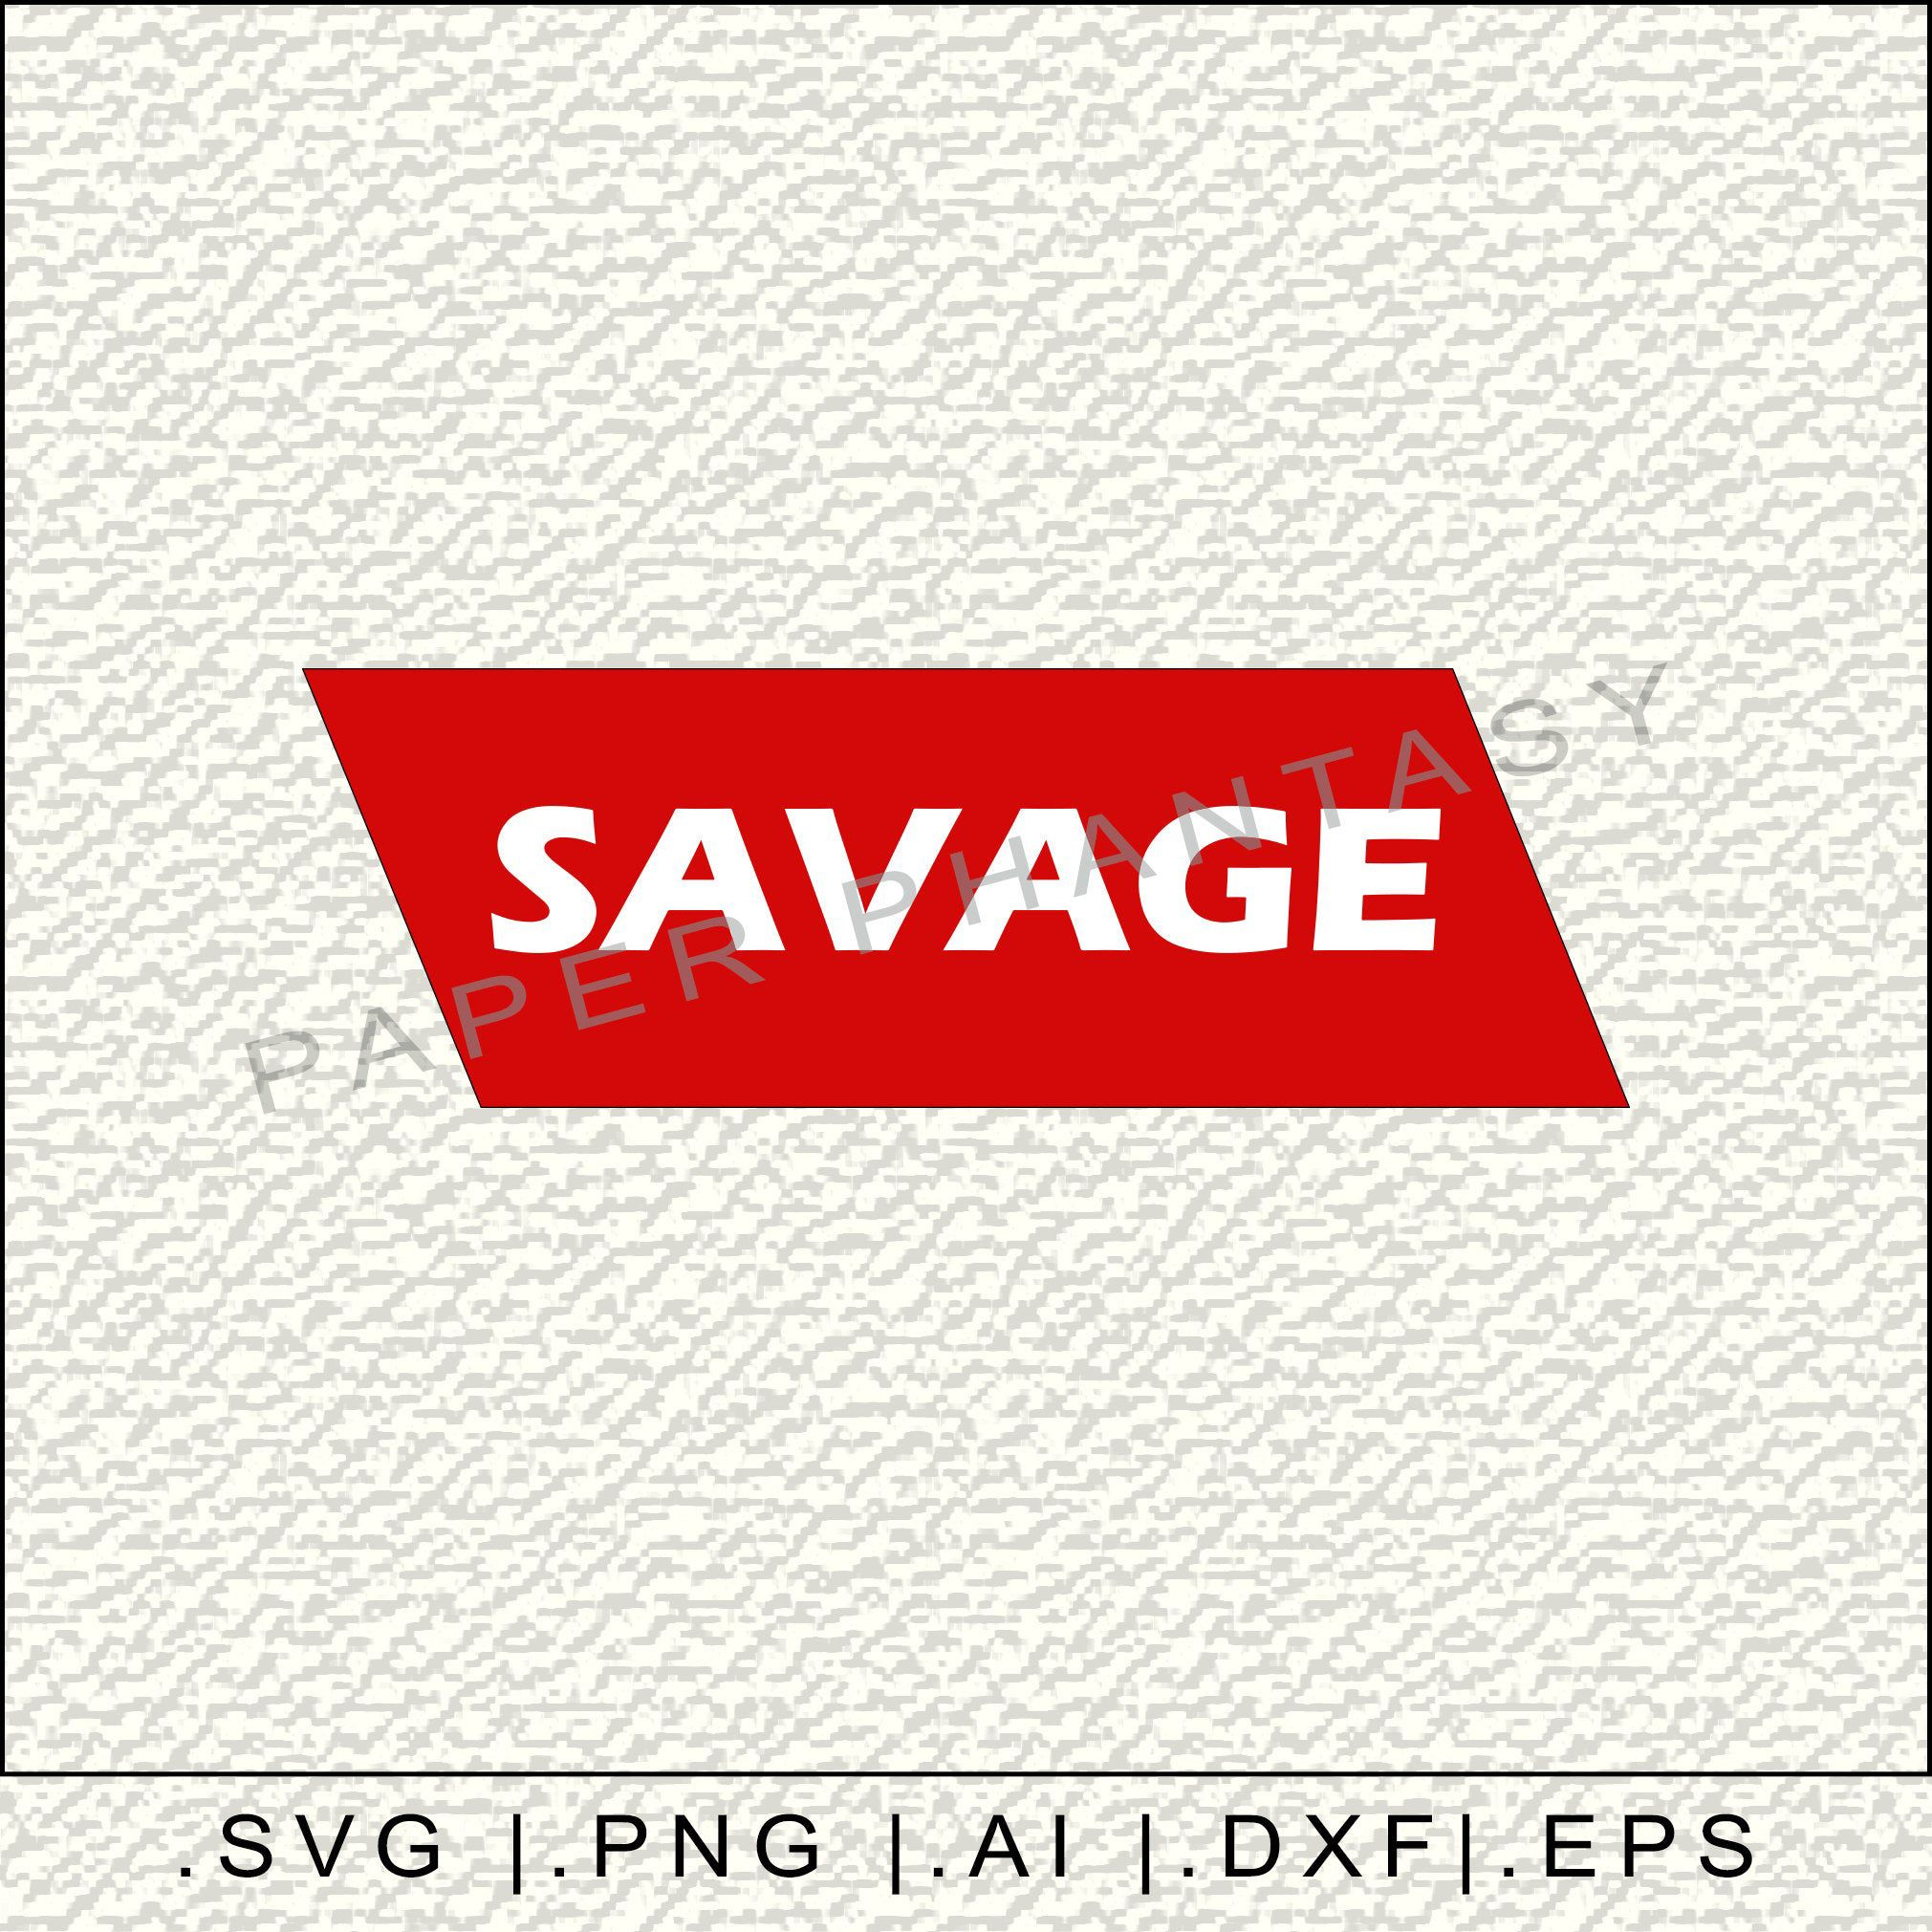 Savage SVG T Shirt Design Red & White Quote Graphic Tee